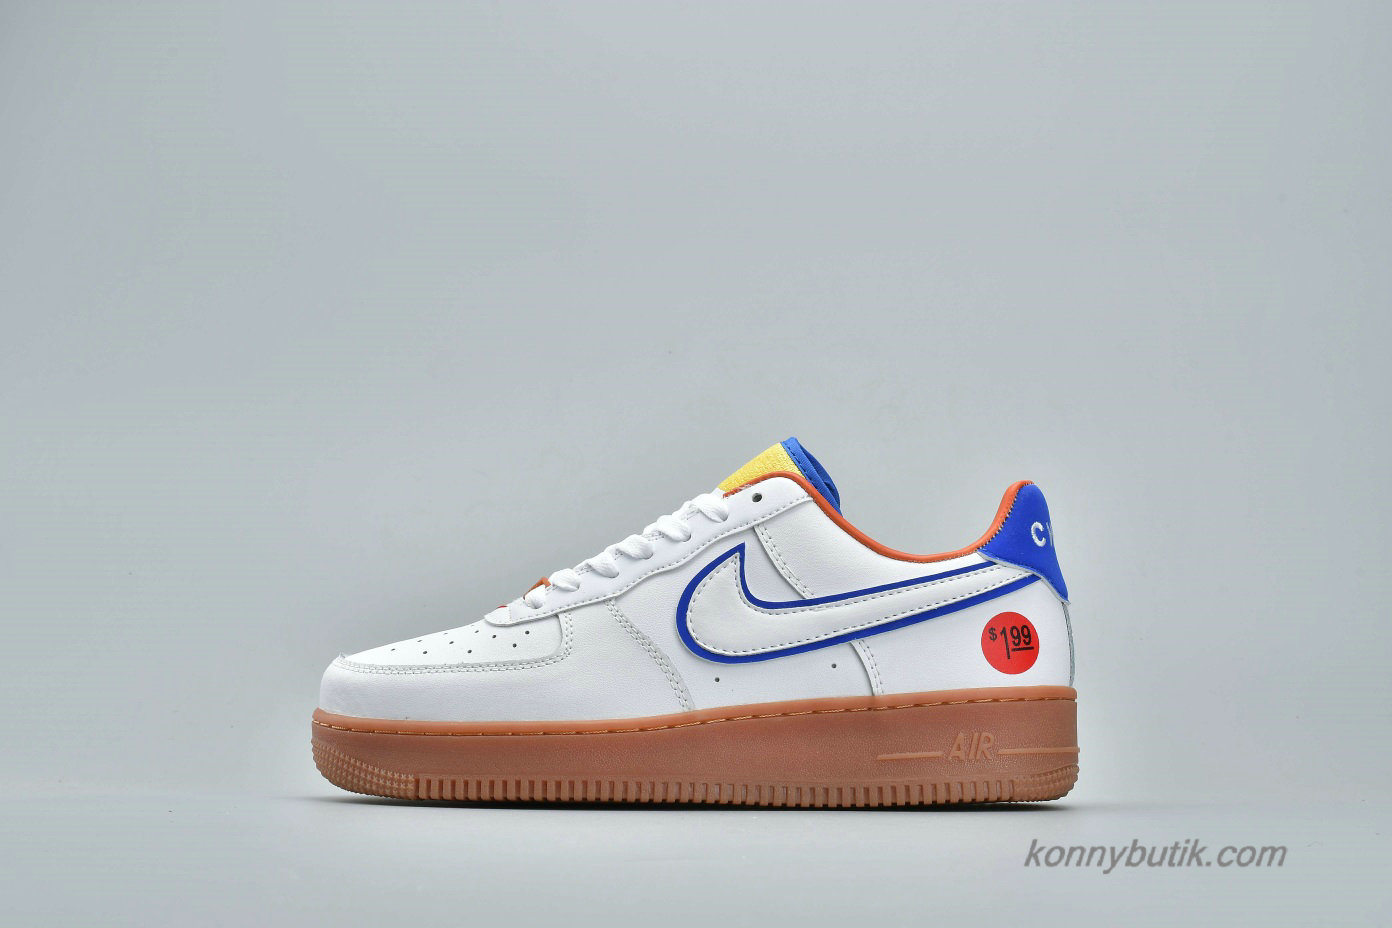 Nike Air Force 1 Low UPSTEP WONDER BREAD Unisex Sko Hvid / Blå (653774-660)